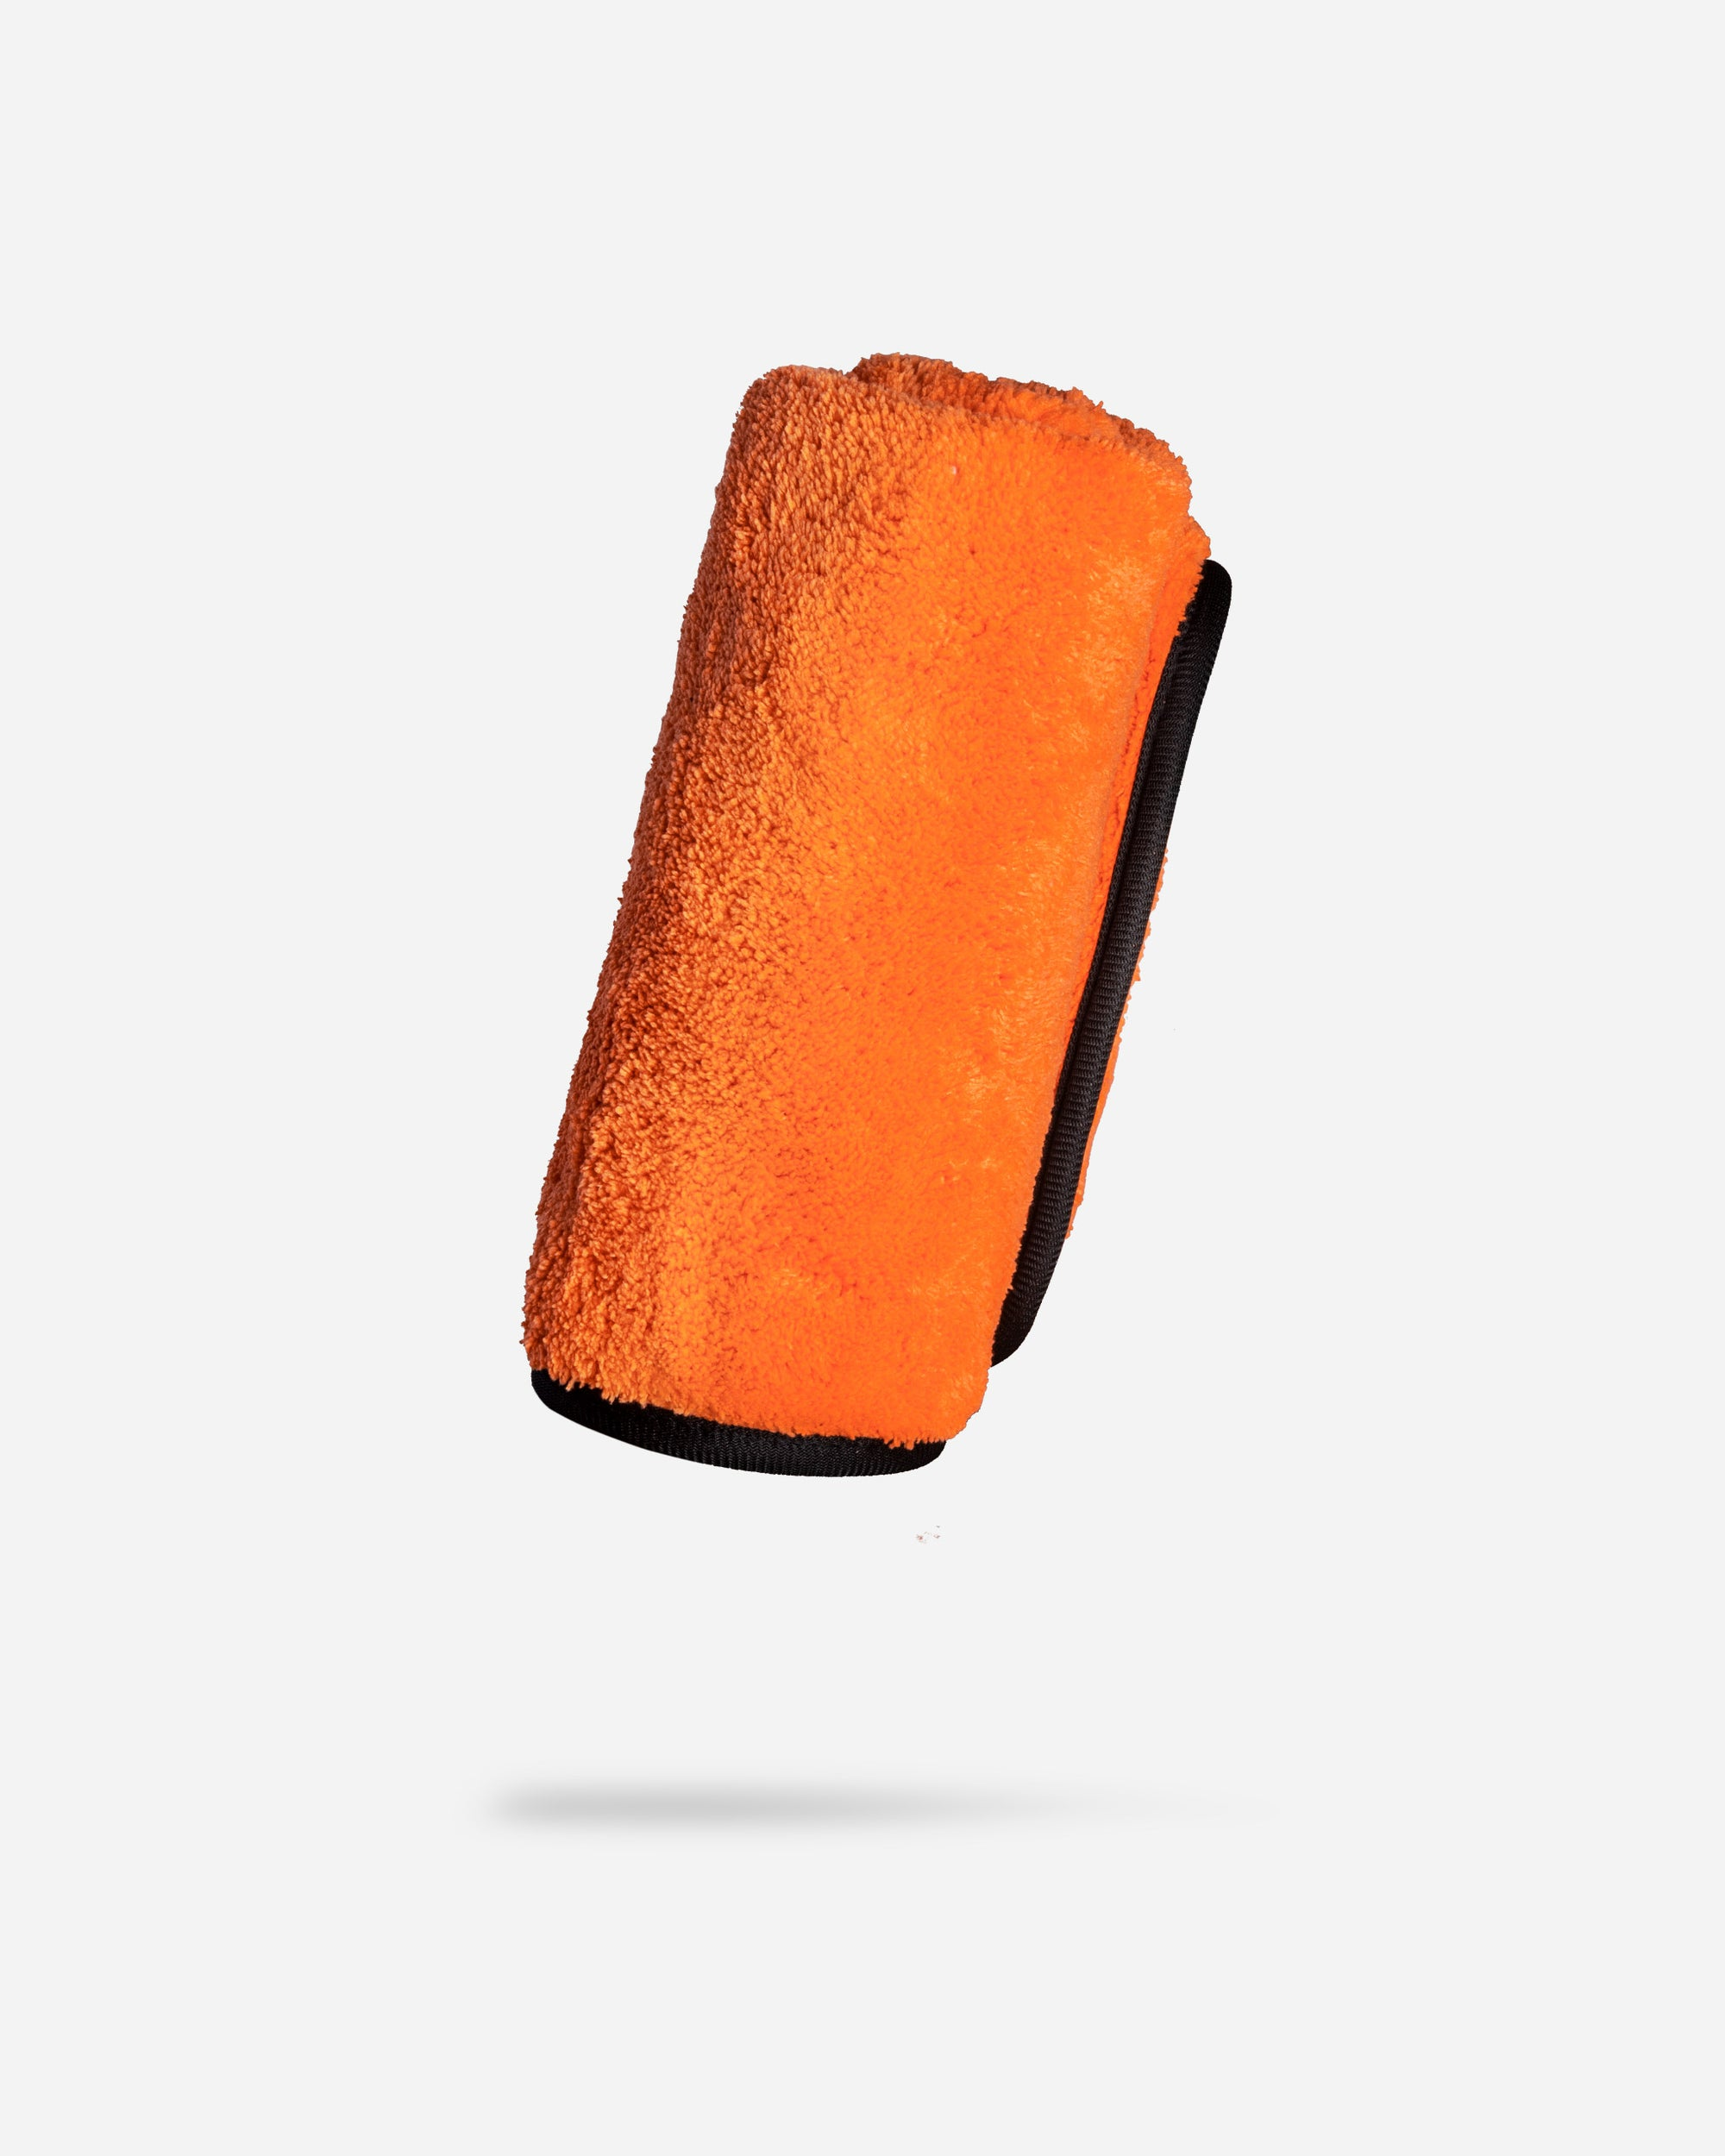 Adam's Plush Orange Microfiber Towel